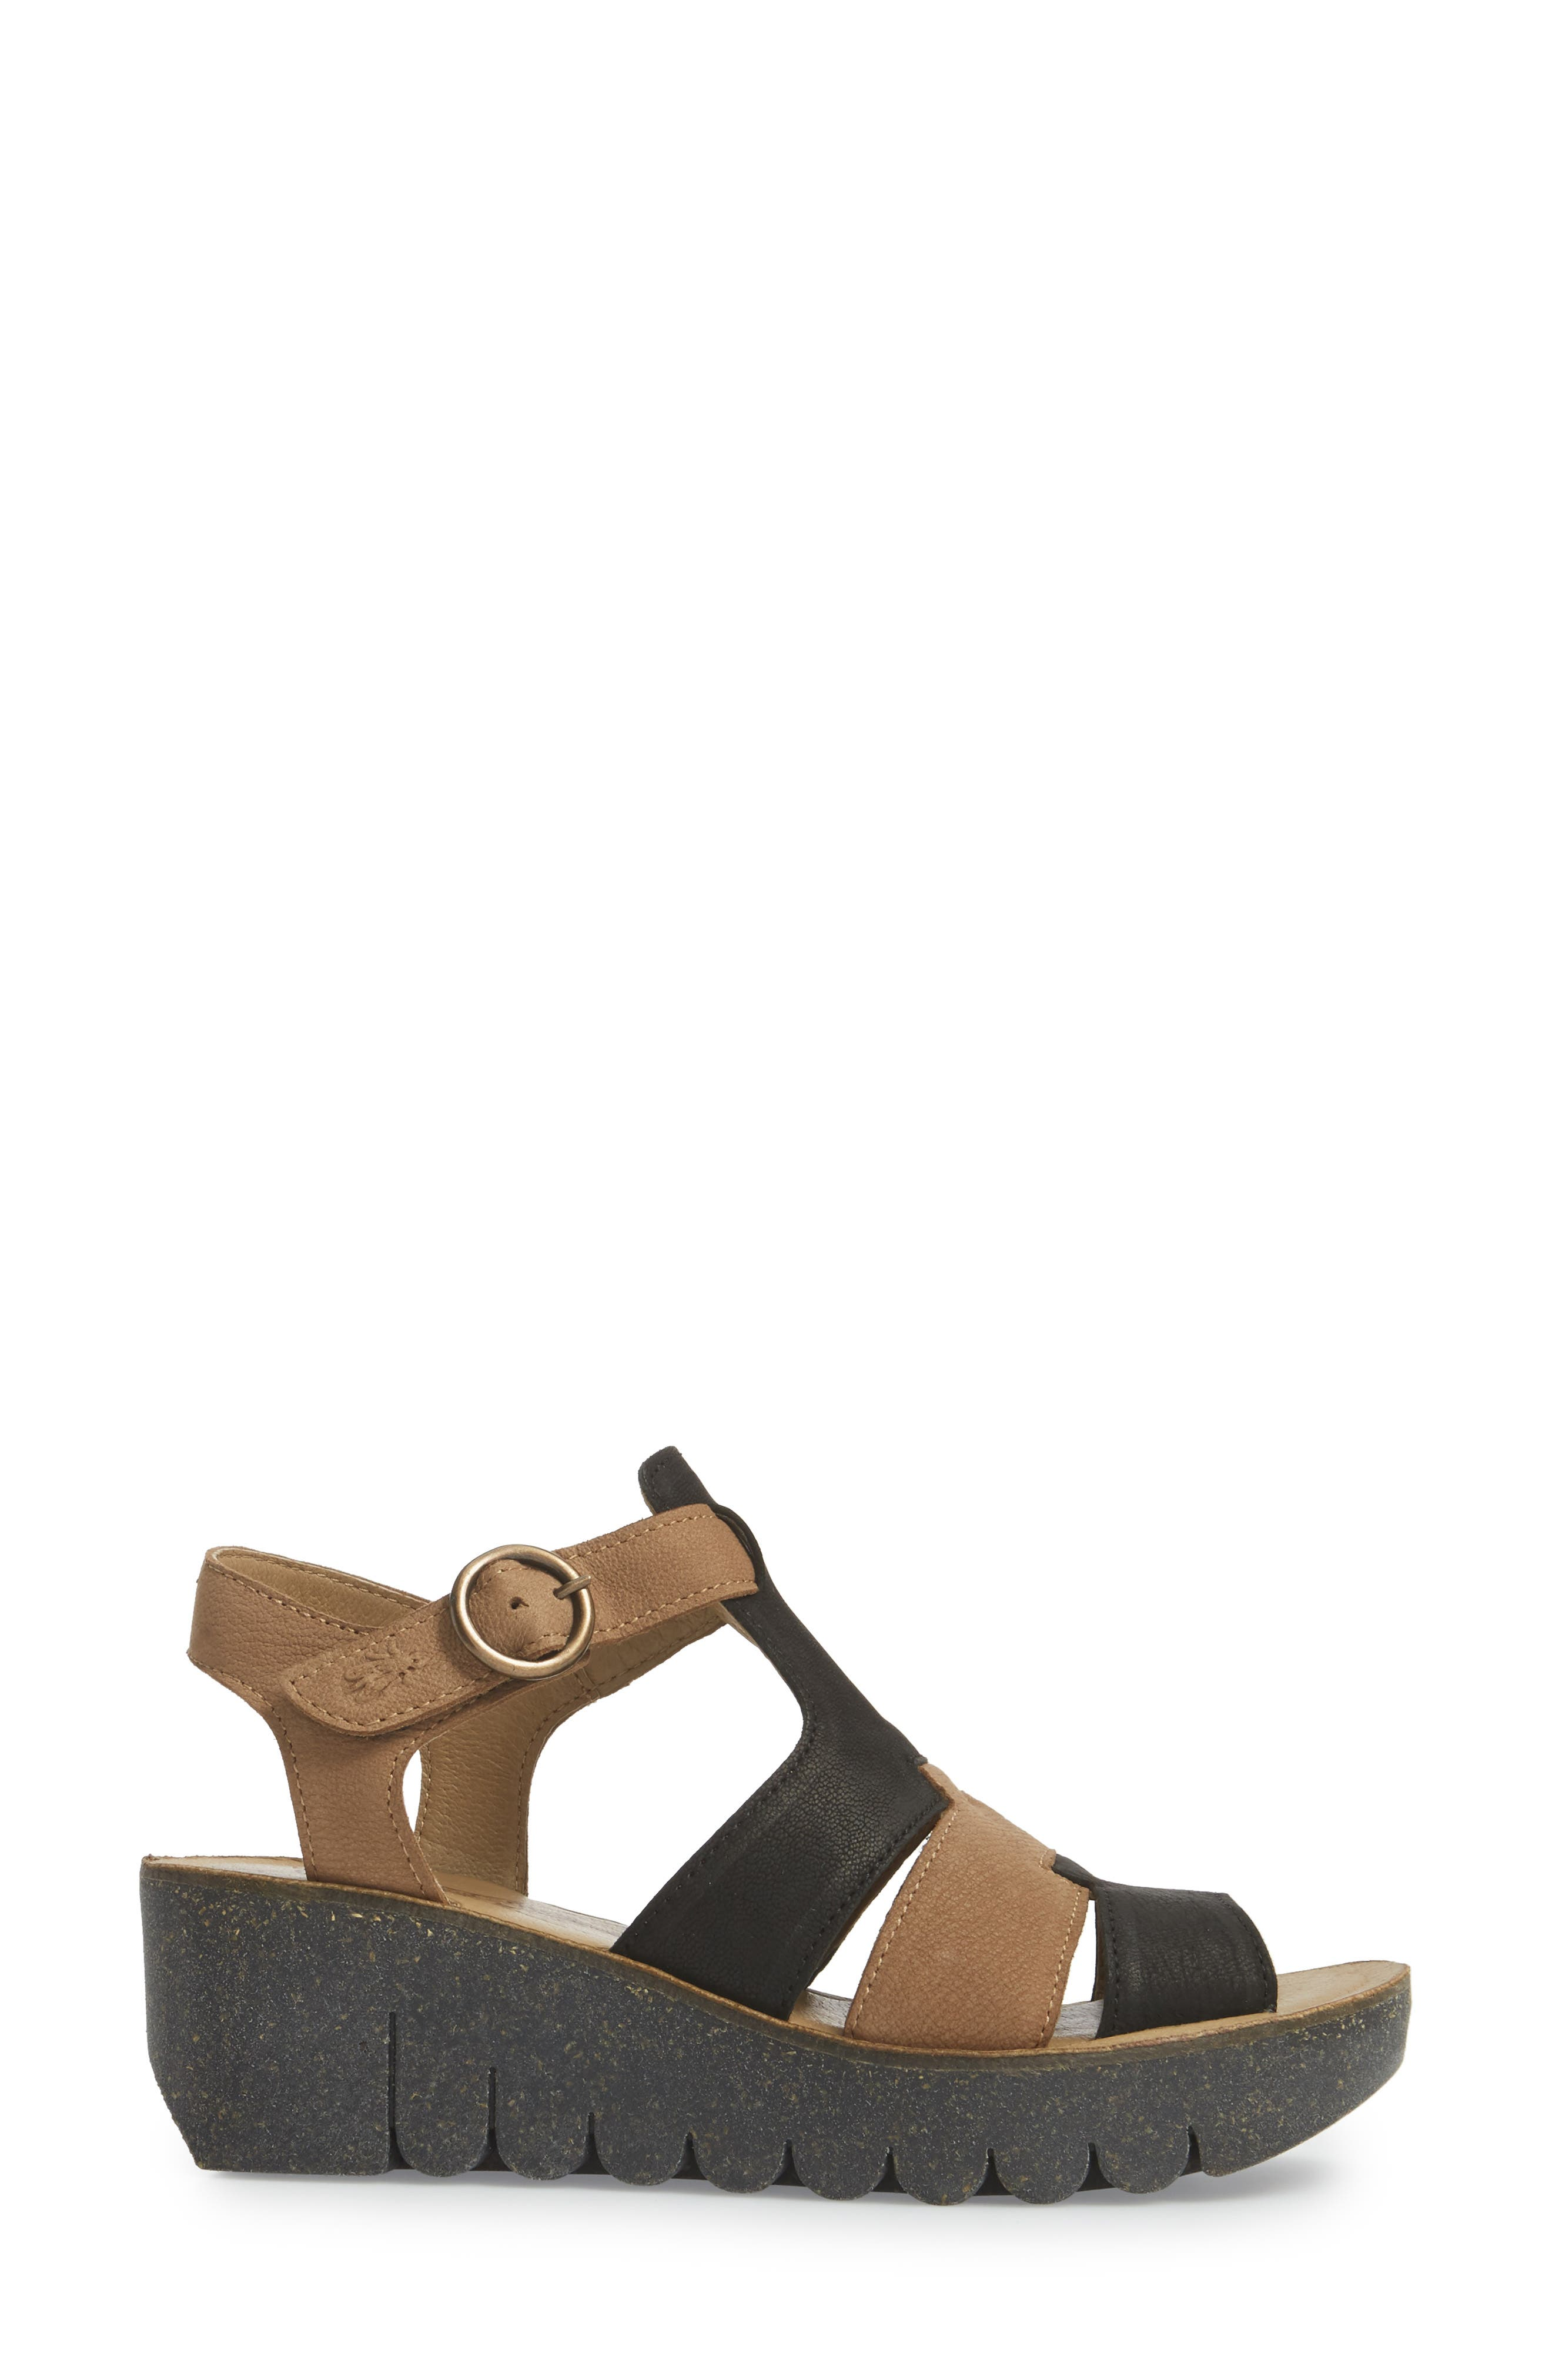 Yuni Wedge Sandal,                             Alternate thumbnail 3, color,                             Black/ Sand Cupido Leather